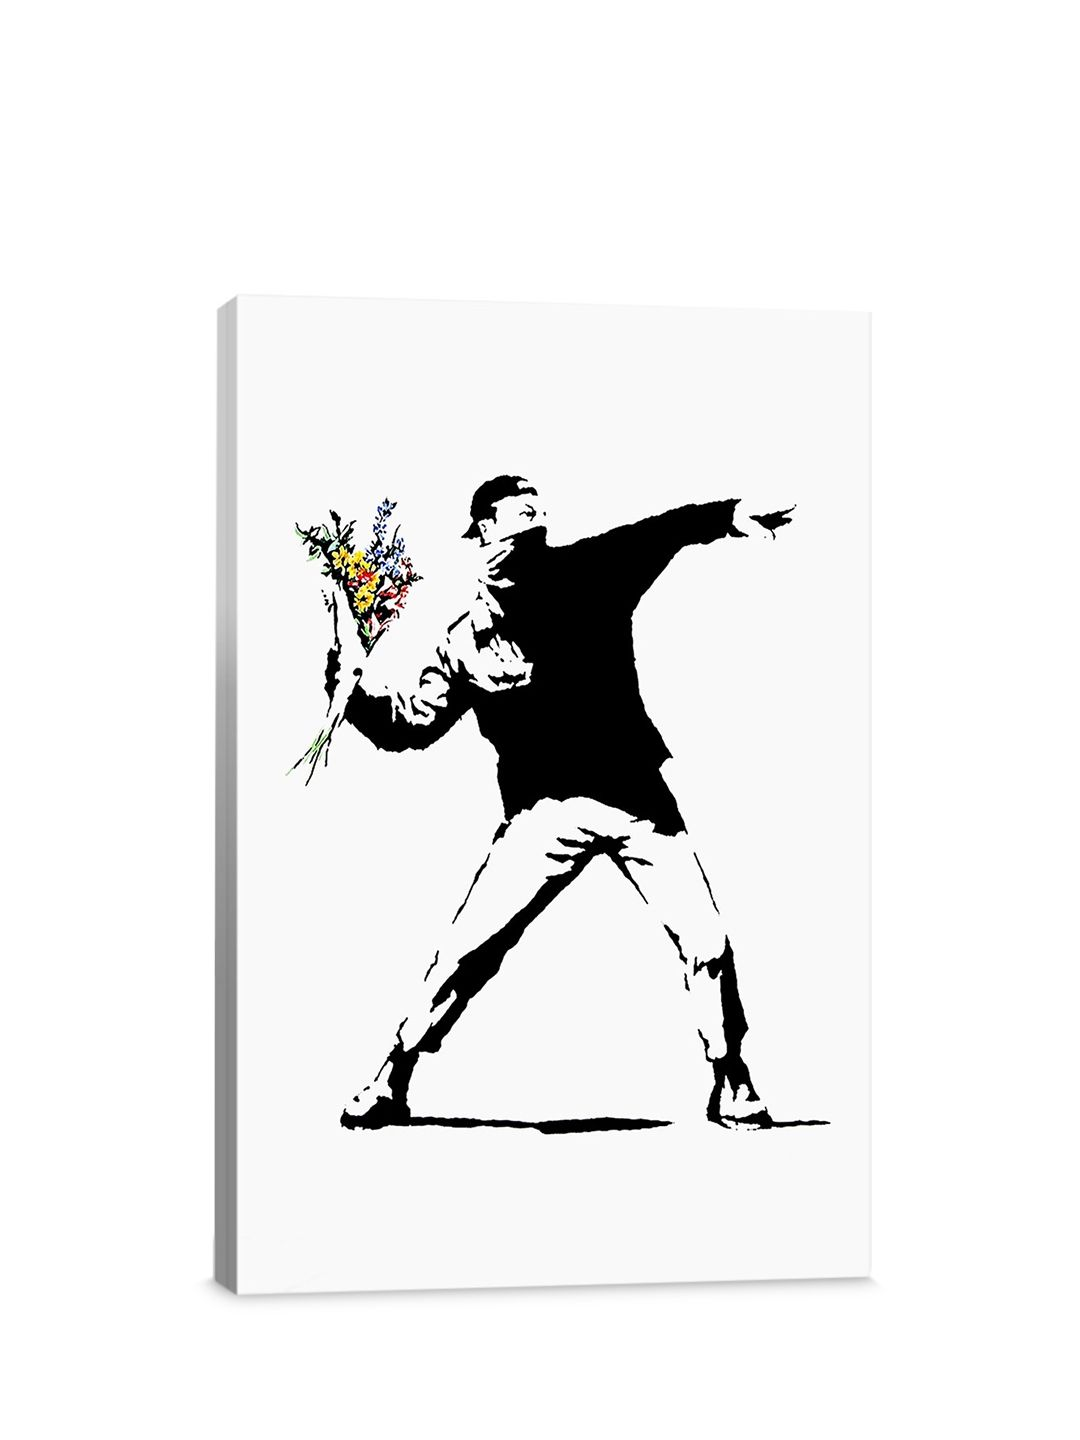 BANKSY FLOWER BOMBER DECAL DECOR STICKER WALL ART GRAPHIC VARIOUS COLOUR